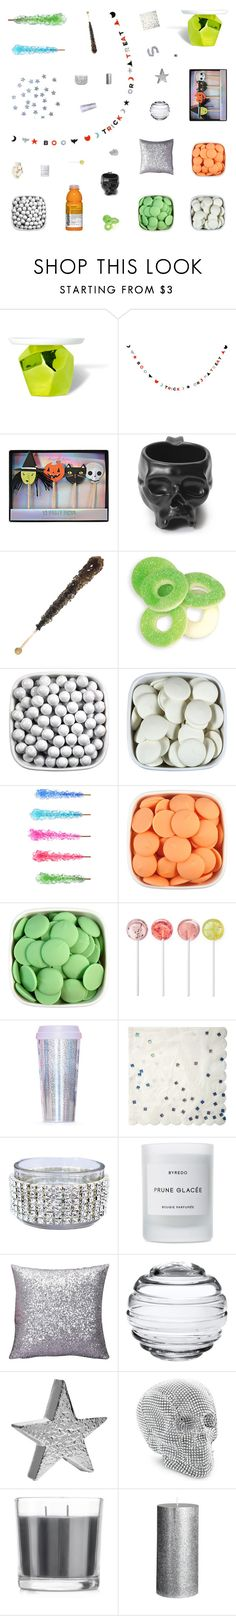 """""""Retro Halloween Party Decor"""" by belenloperfido ❤ liked on Polyvore featuring interior, interiors, interior design, home, home decor, interior decorating, Imm Living, Meri Meri, Williams-Sonoma and WALL"""